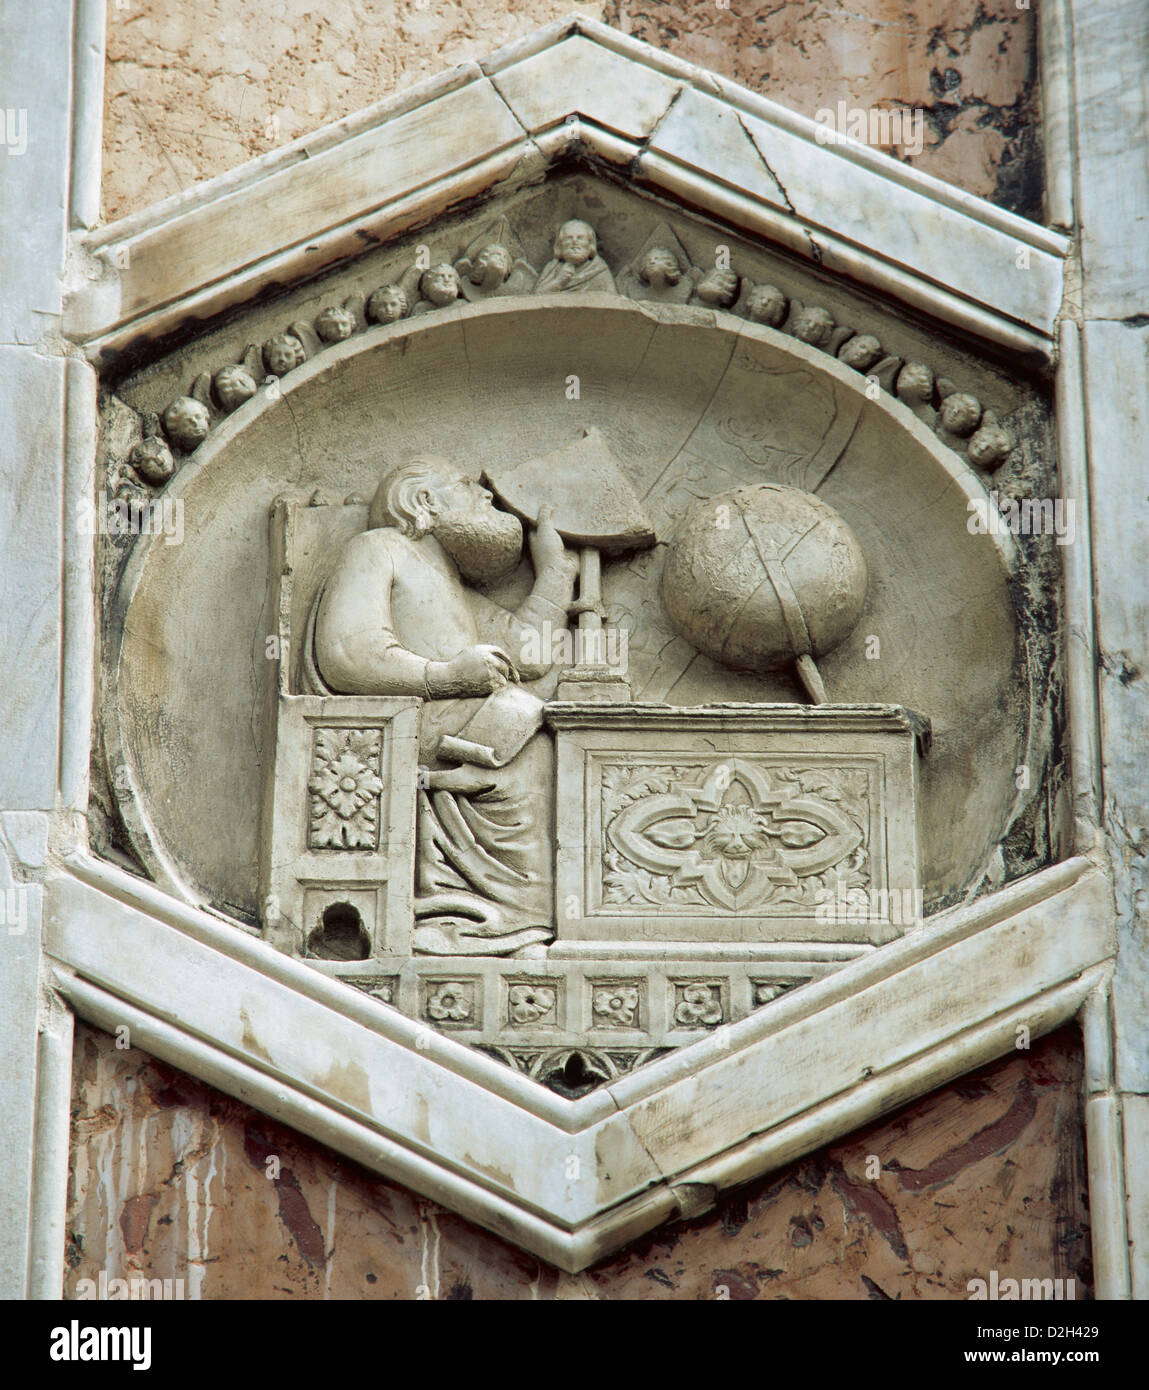 Gionitus. Inventor of Astronomy, (1334-1336). Relief in the exagonal panels of the campanile of Florence Cathedral. - Stock Image